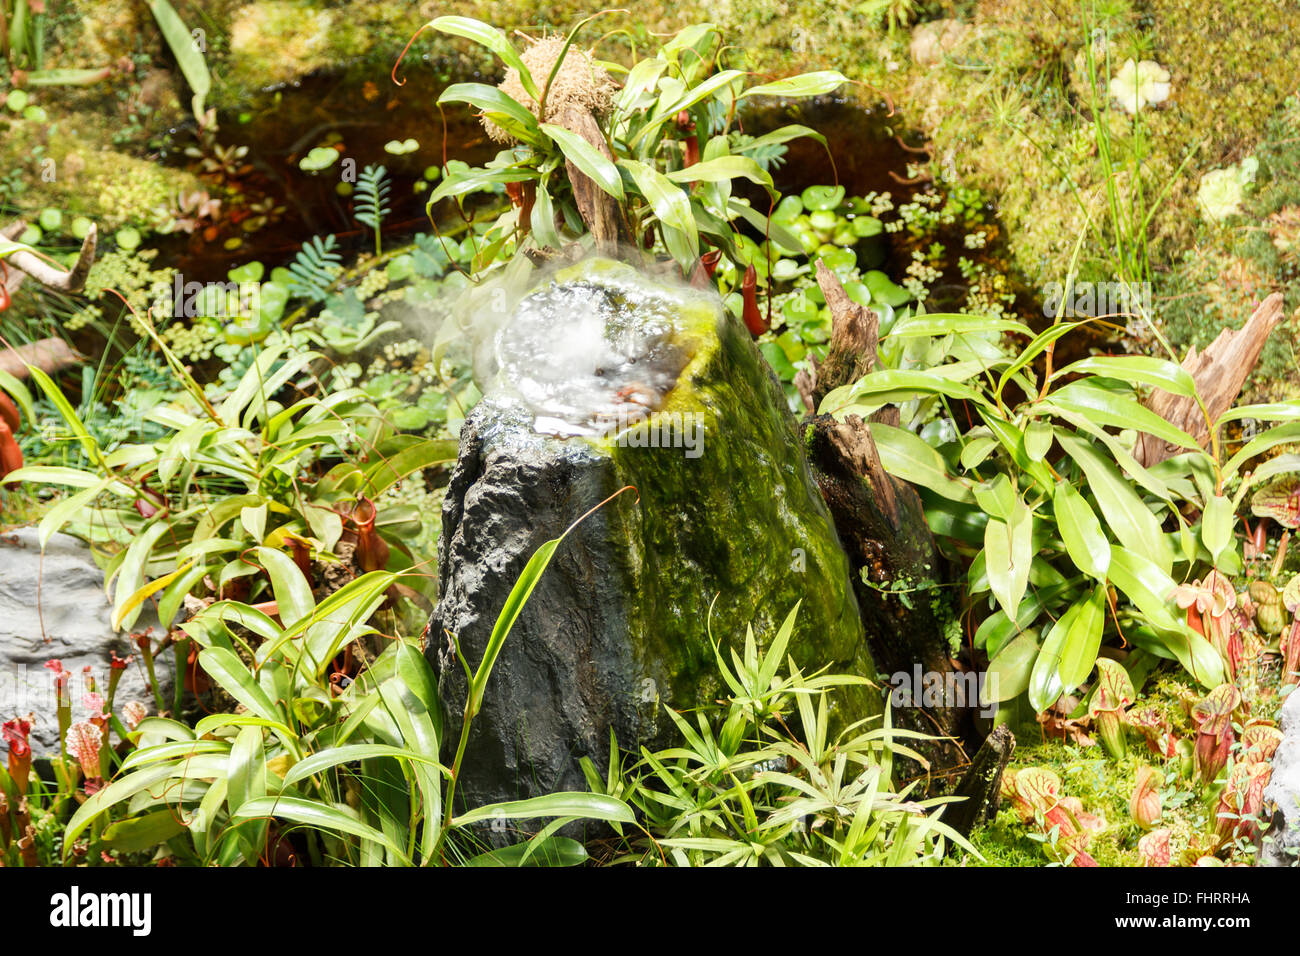 Carnivore Pflanzen Carnivorous Plants And Pond In A Greenhouse Stock Photo